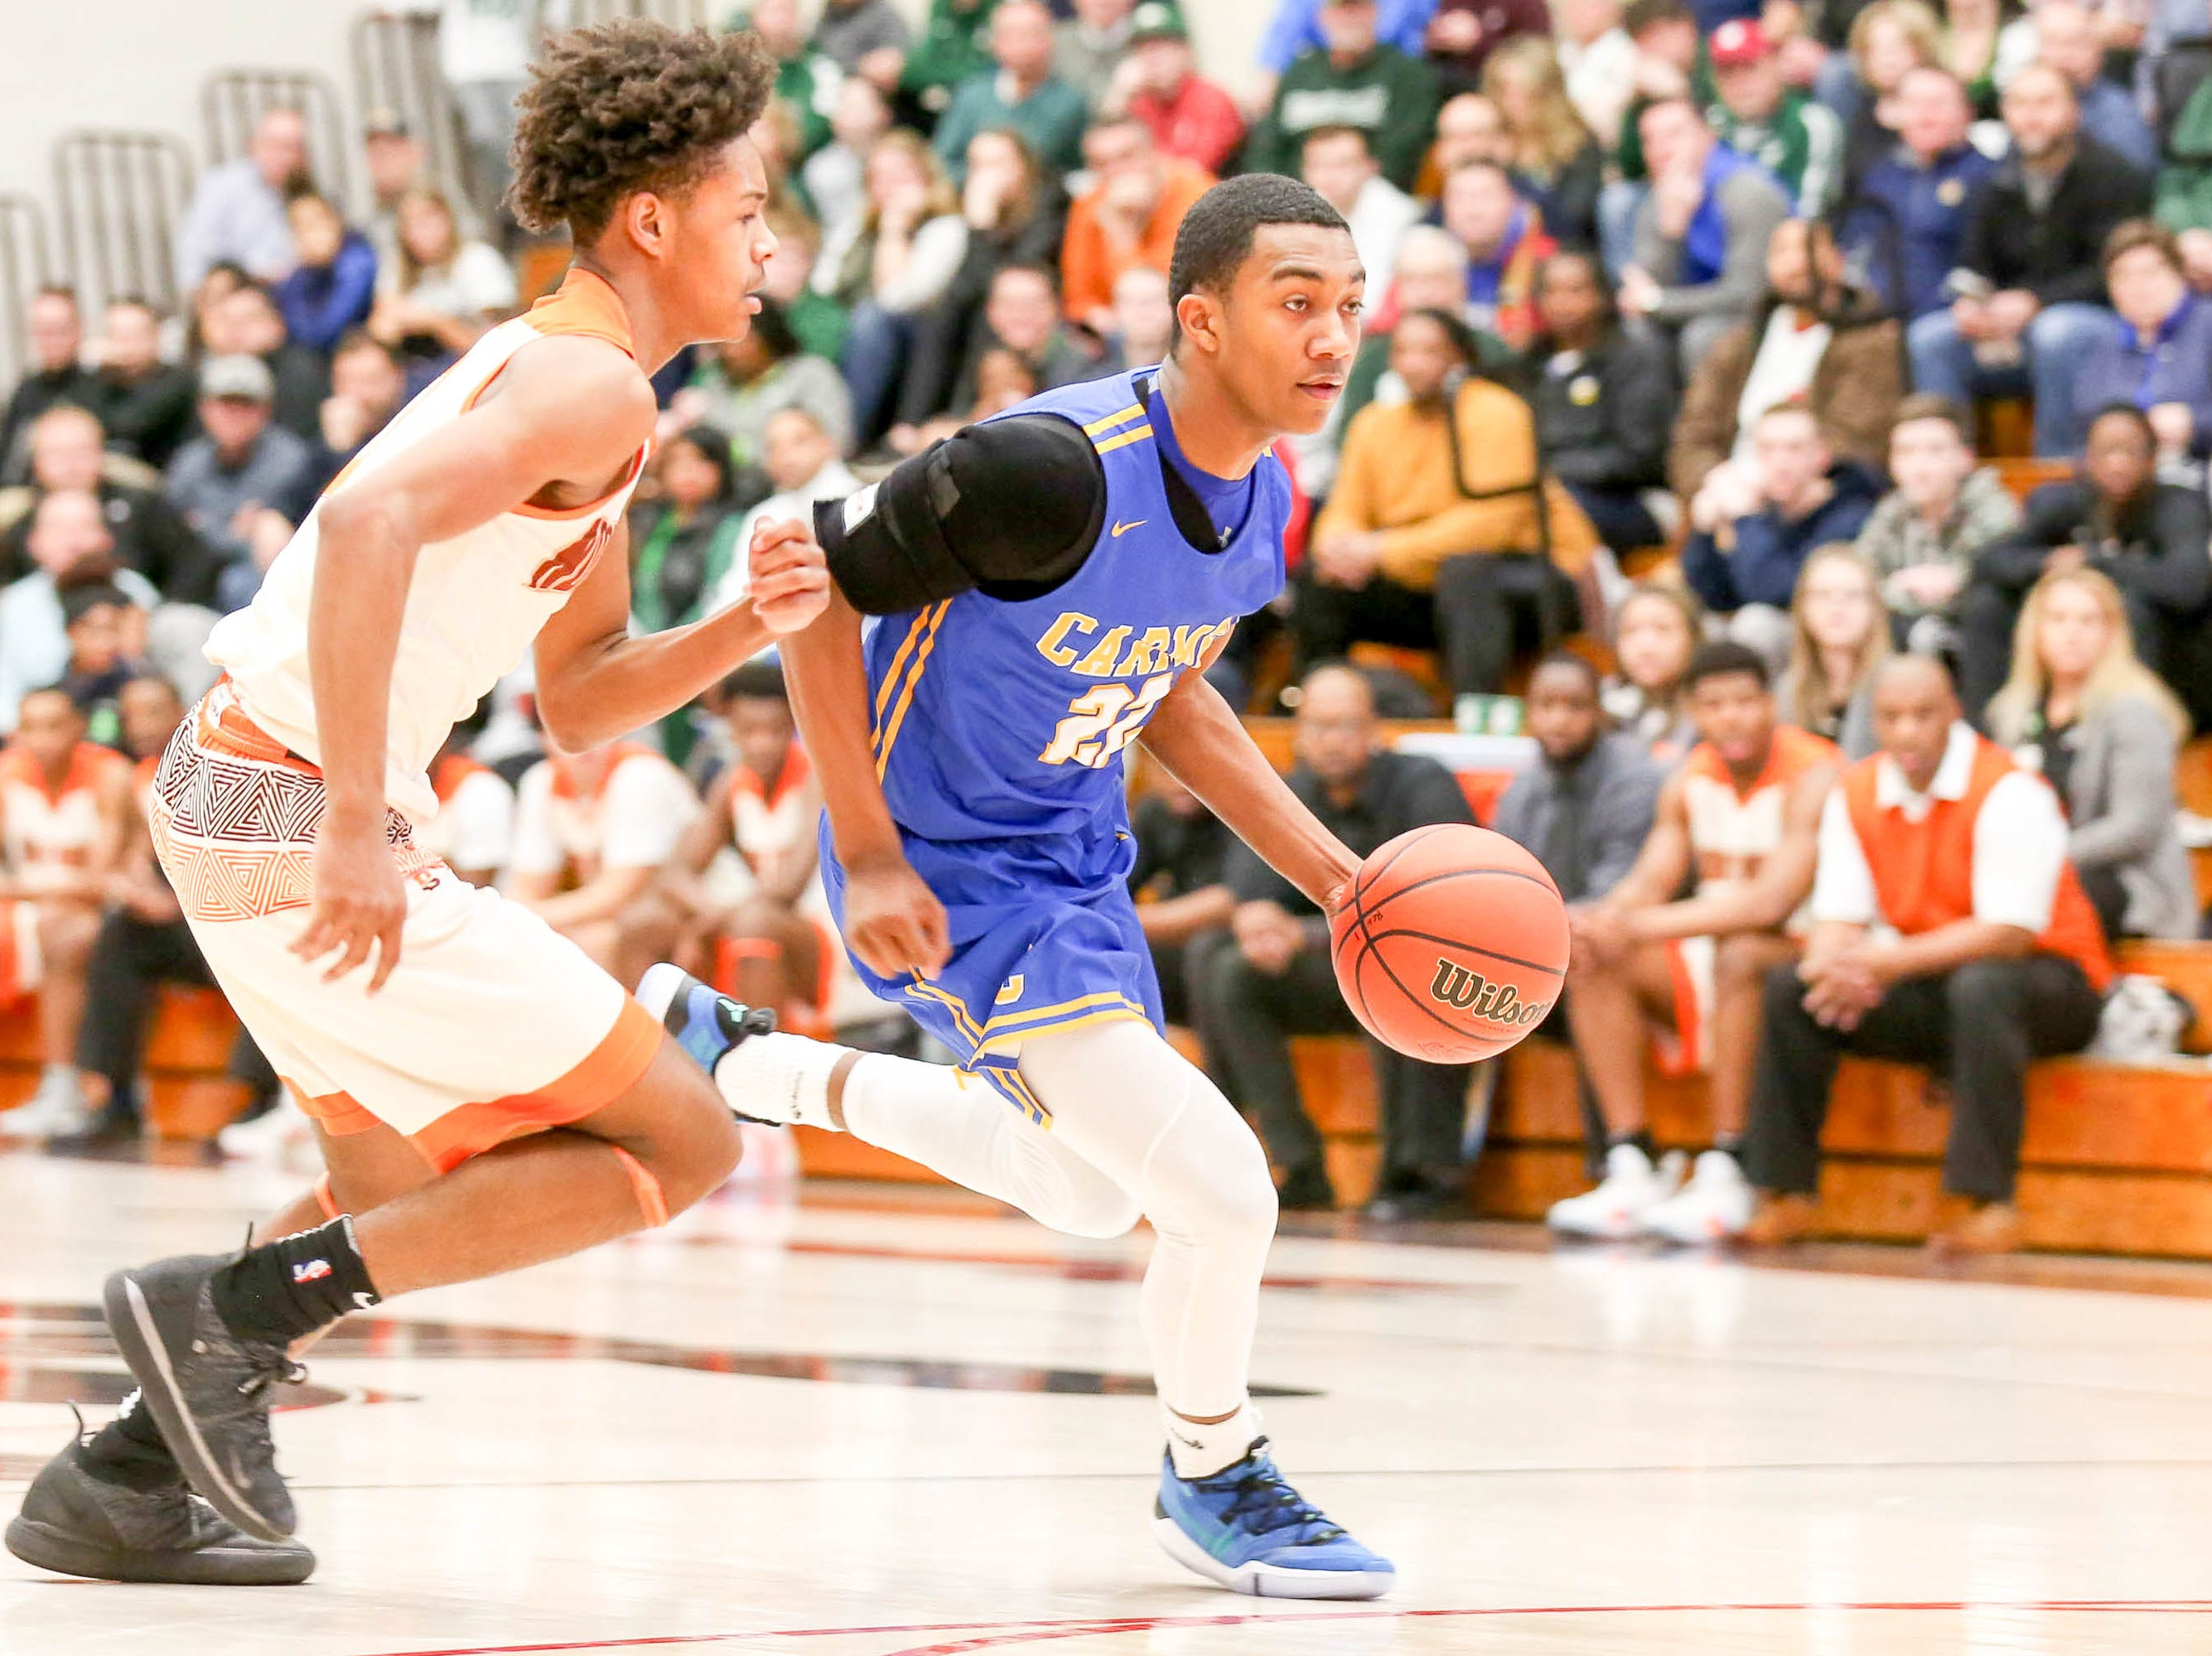 Carmel's Robert Fry (22) works to get around Forth Wayne Northrop Tenoah Ridley (3) during the second half of Carmel vs. Fort Wayne Northrop High School in the IHSAA Varsity Boys Regional Semifinals held at Logansport High School, March 9, 2019.